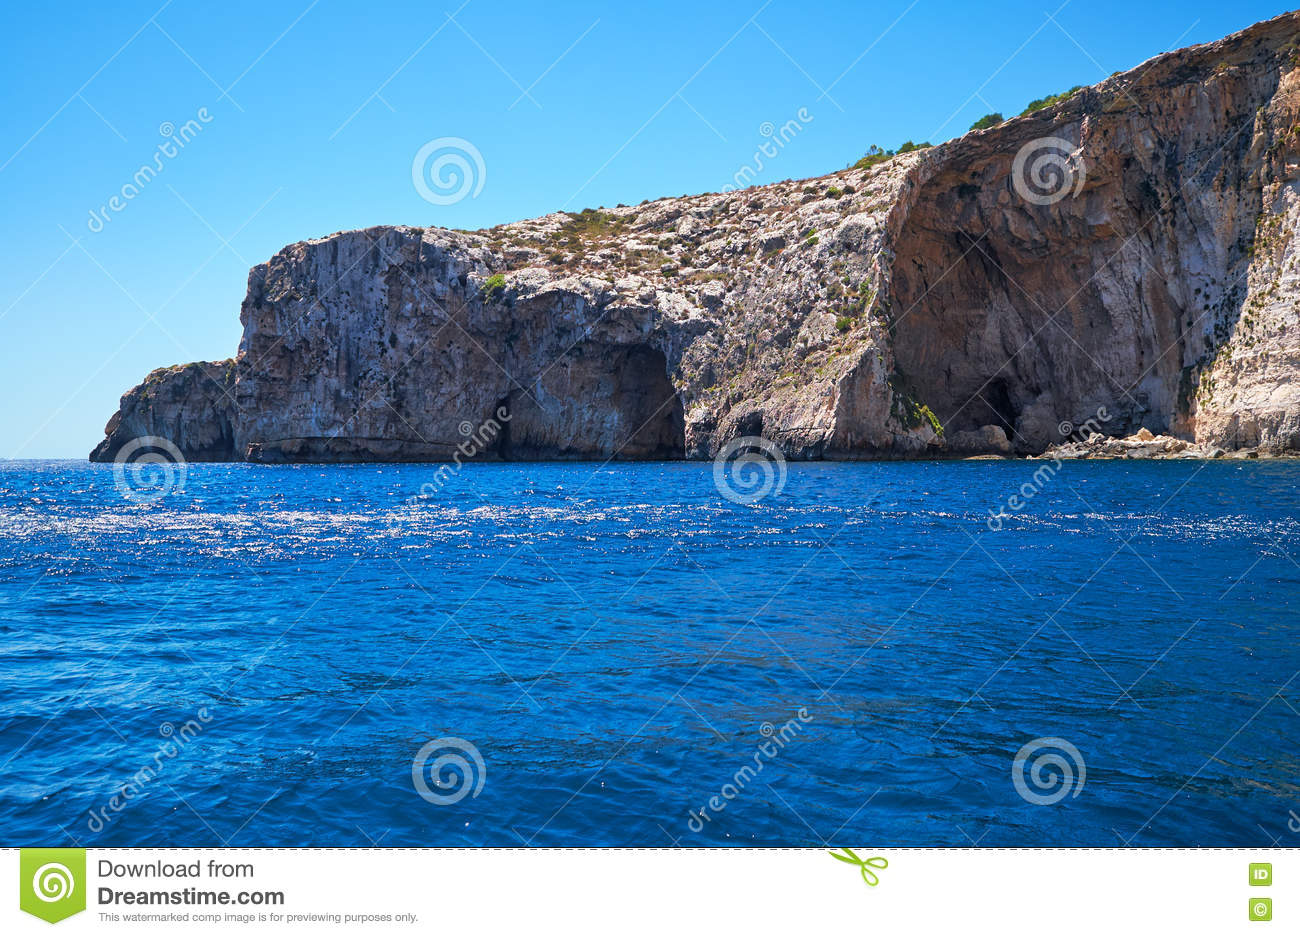 Where To Buy Natural Sea Water